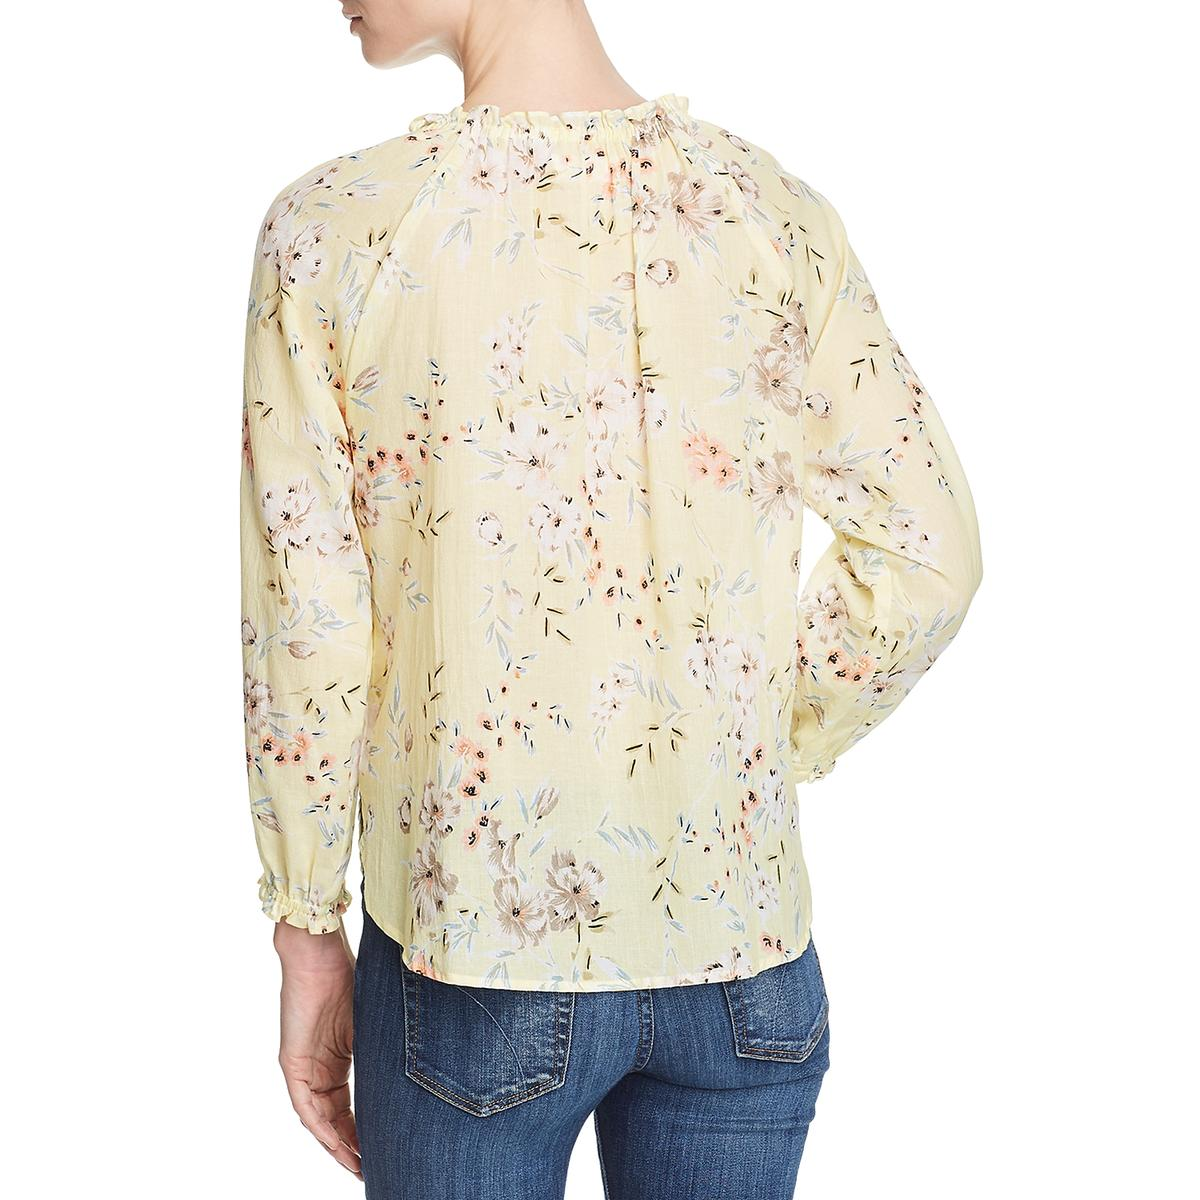 Velvet Womens Yellow Sheer Floral Print Pullover Peasant Top Blouse XS BHFO 9944